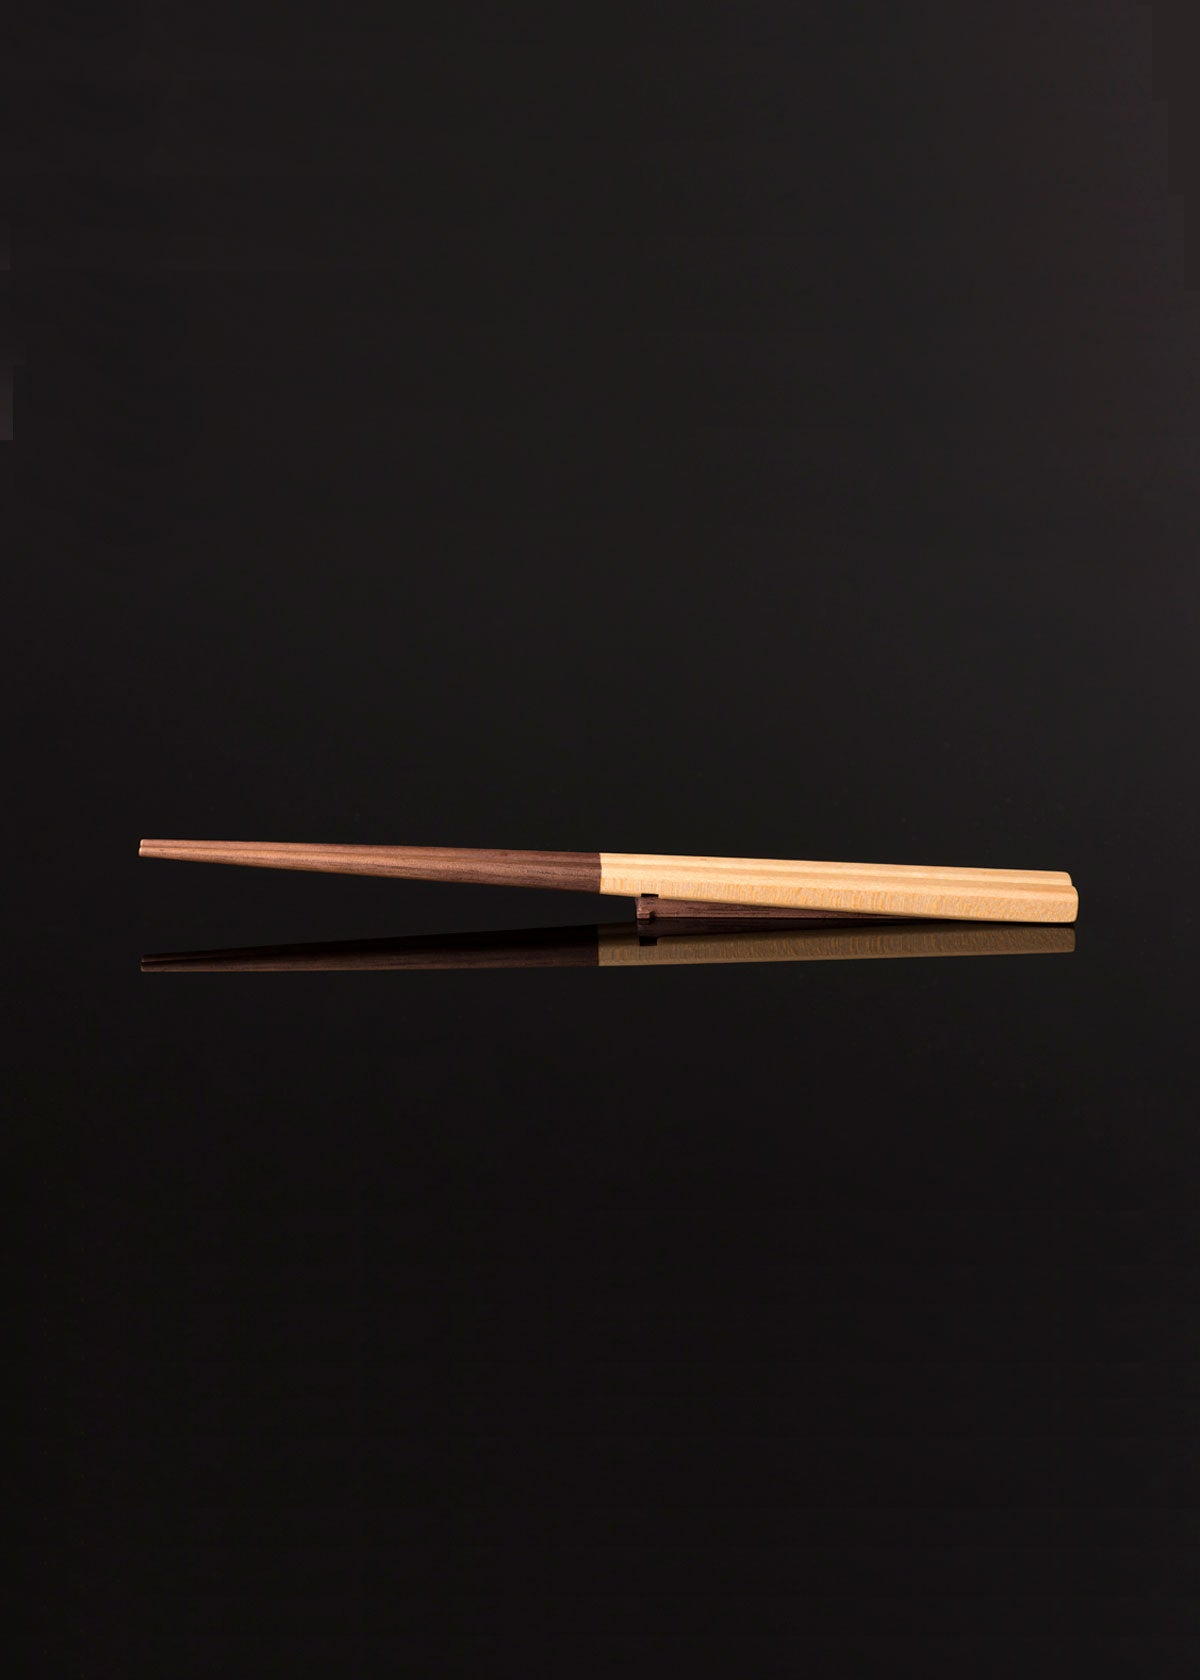 Dual Wood Chopsticks